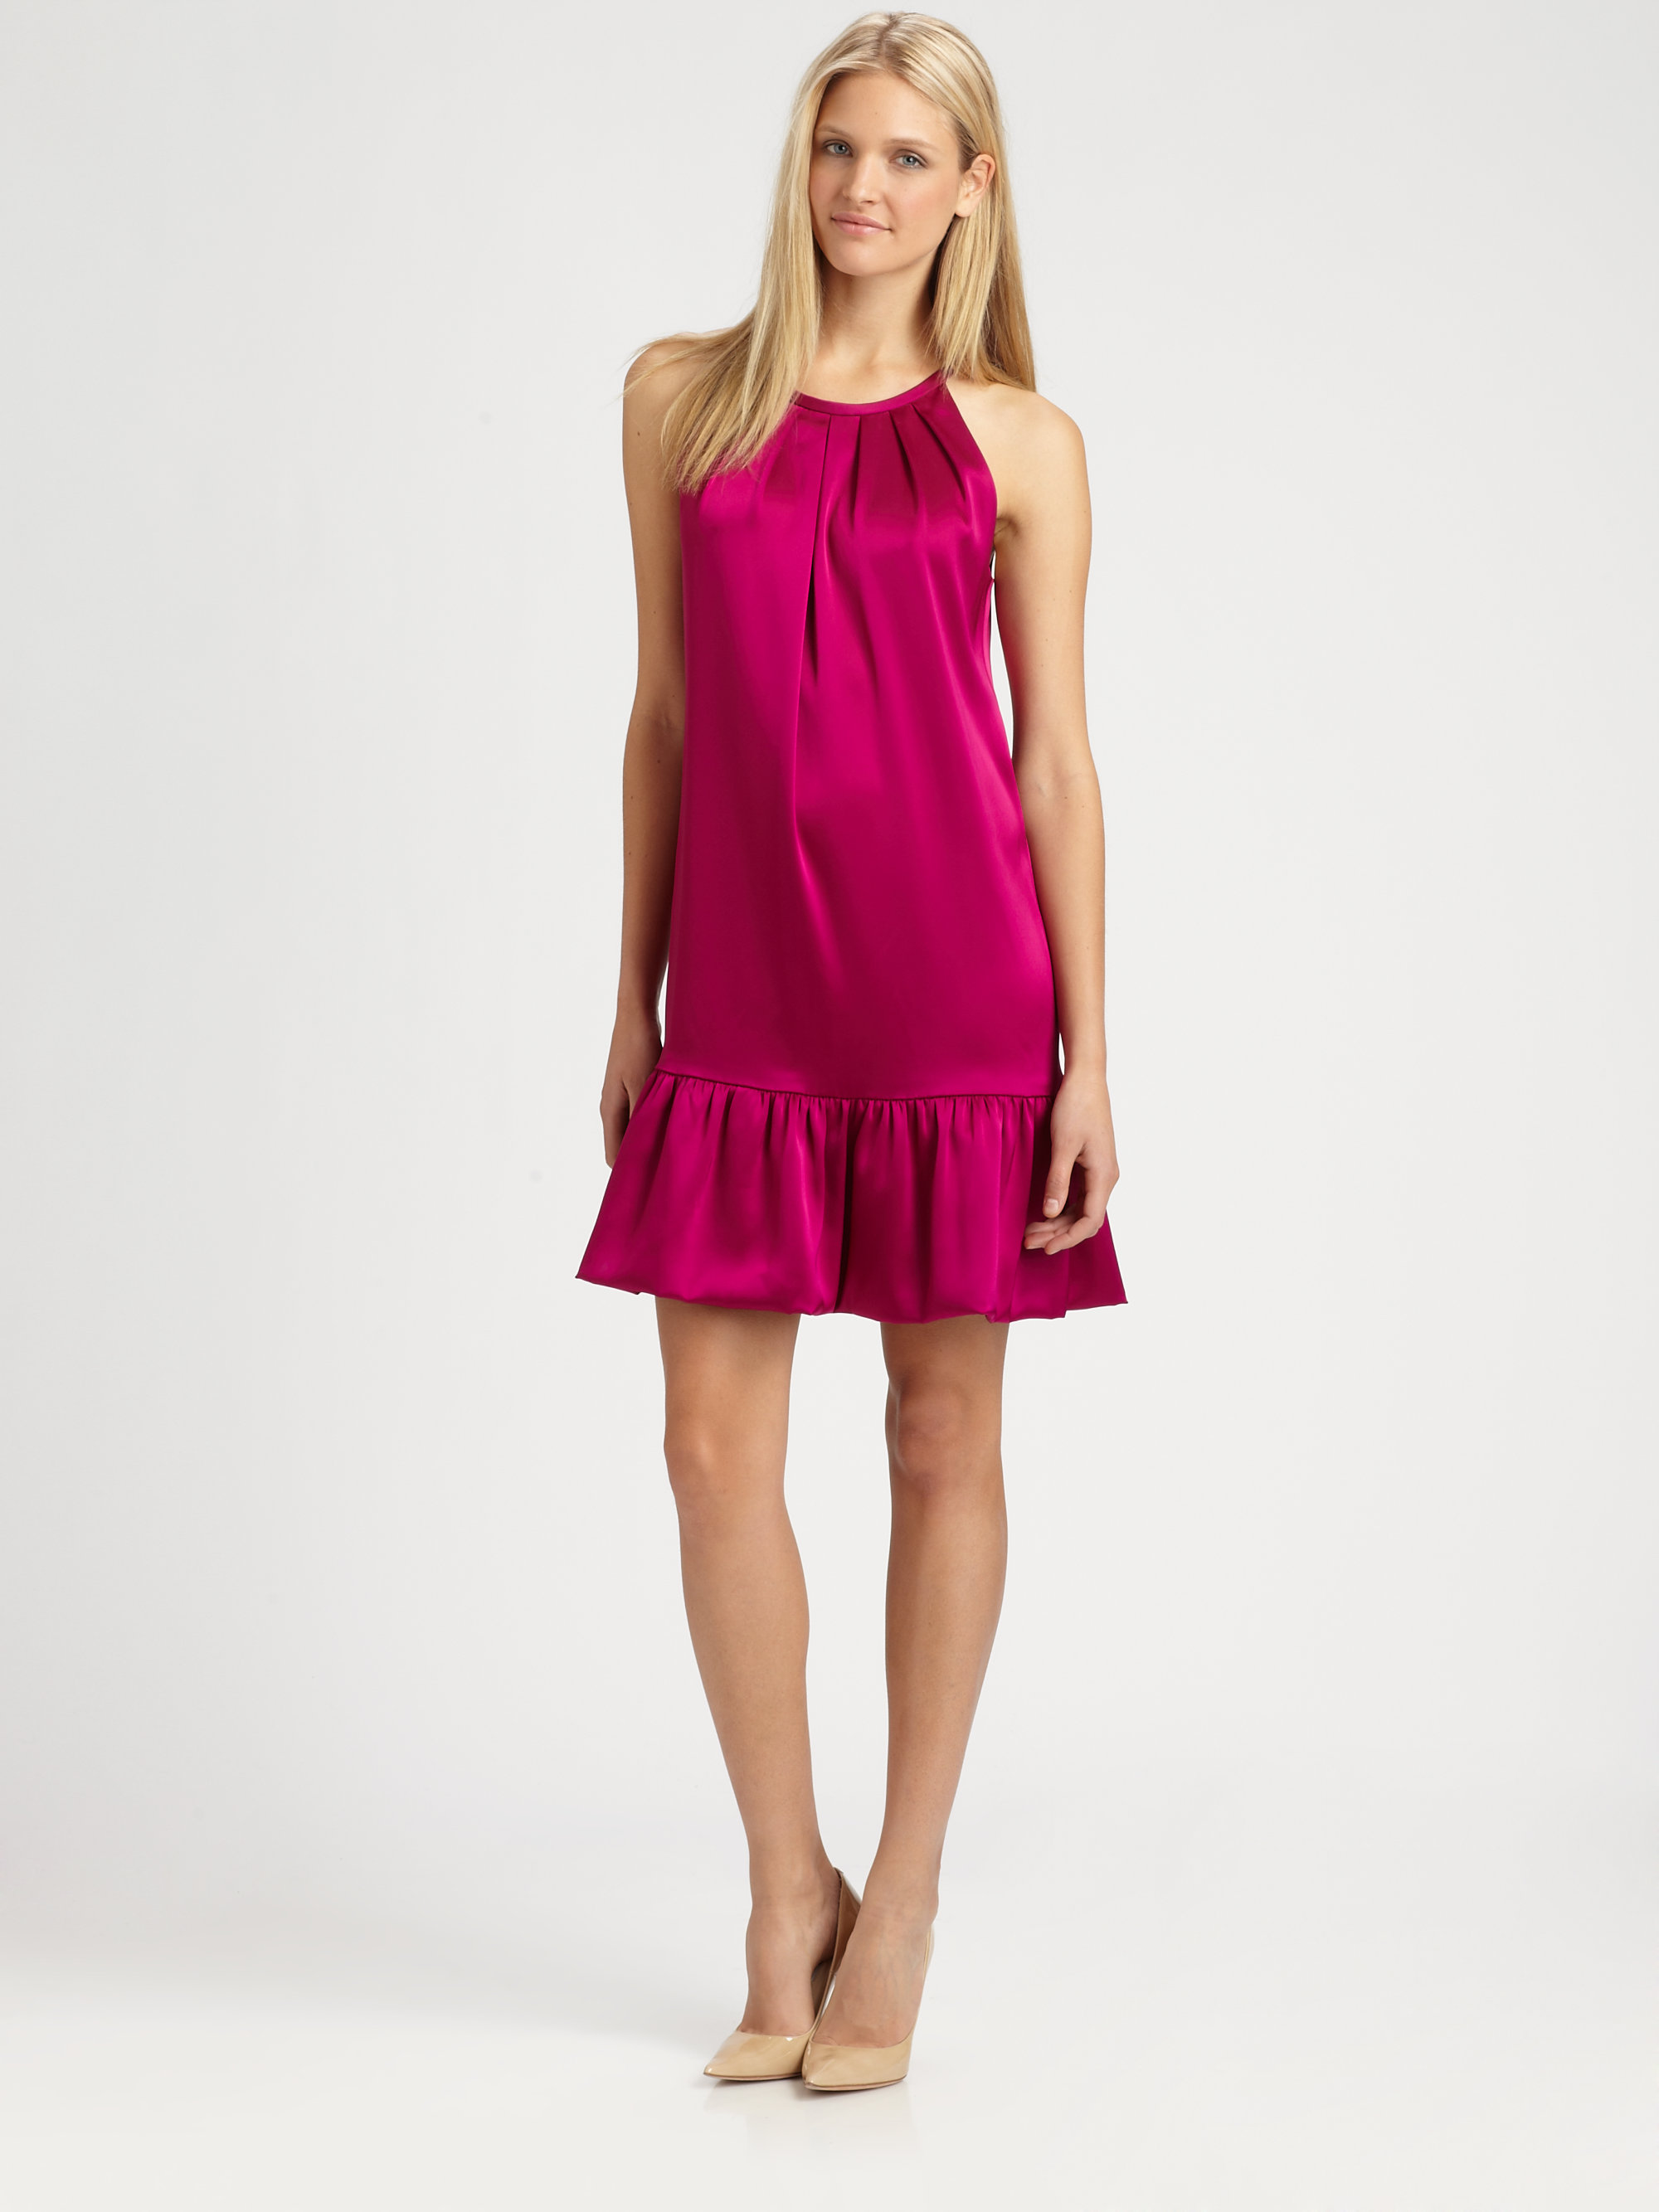 Lyst  Dkny Halter Dress in Pink